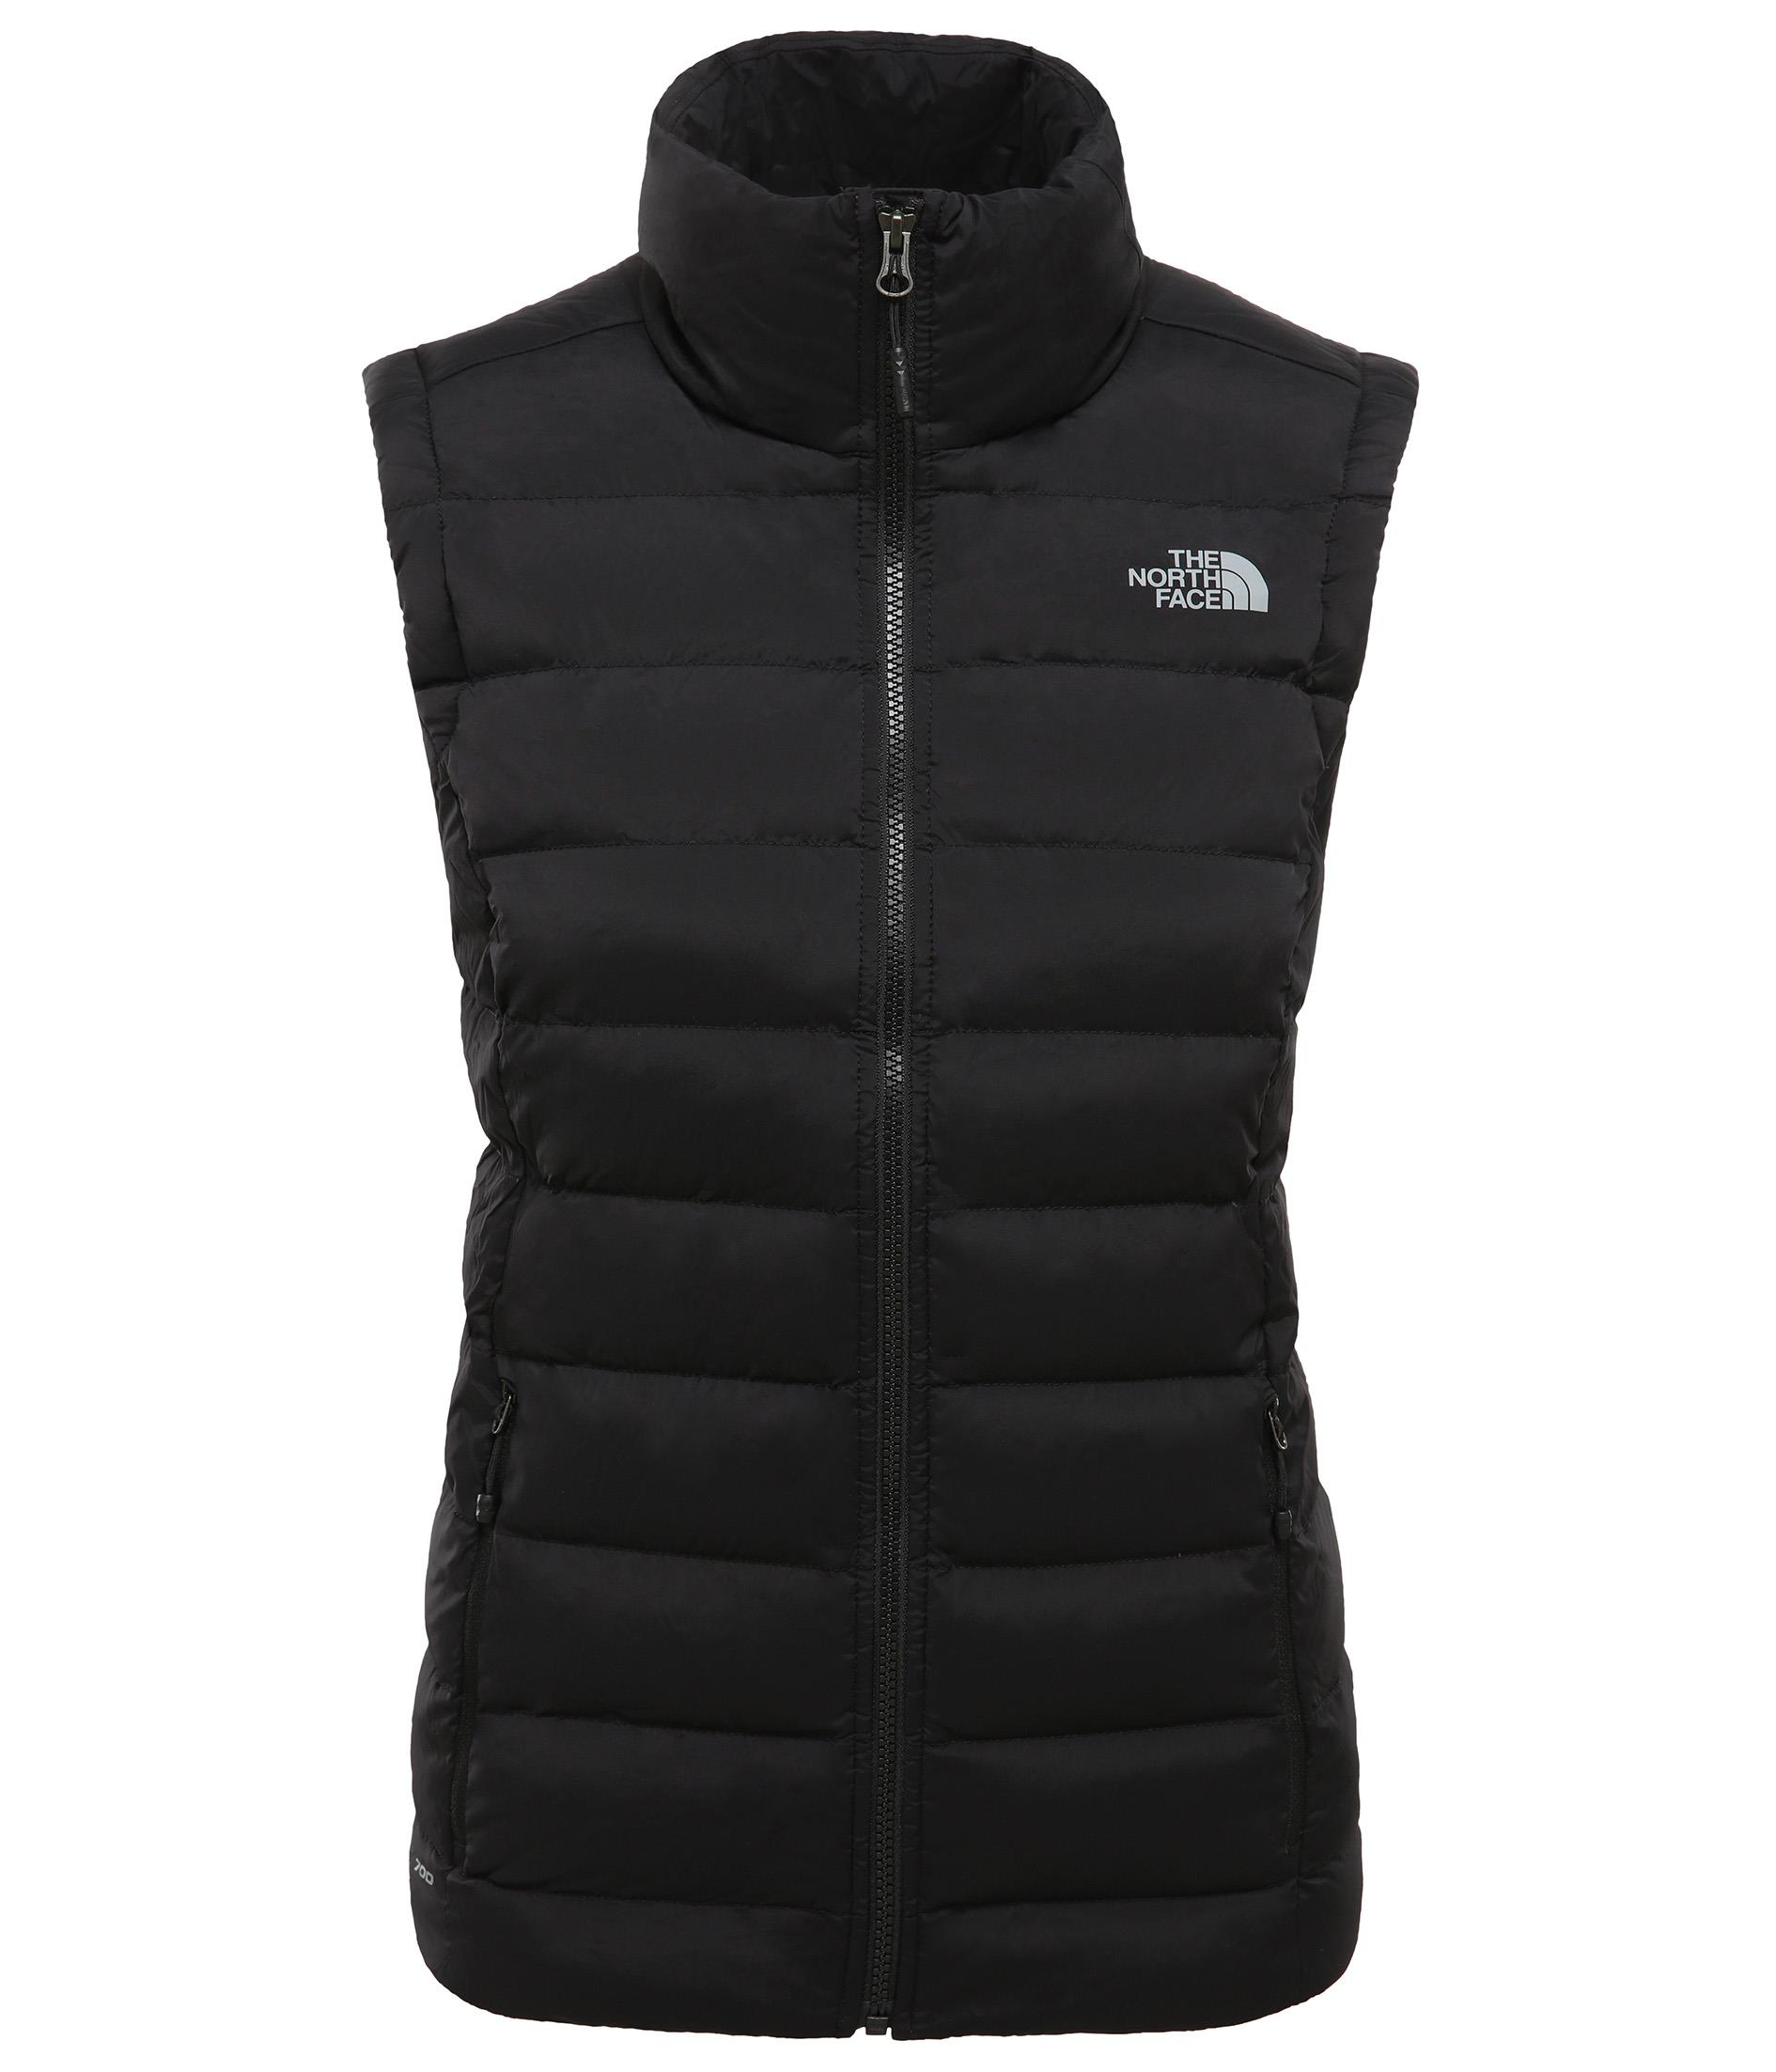 The North Face Kadın Strtch Kaztüyü Yelek Nf0A3O7Fjk31